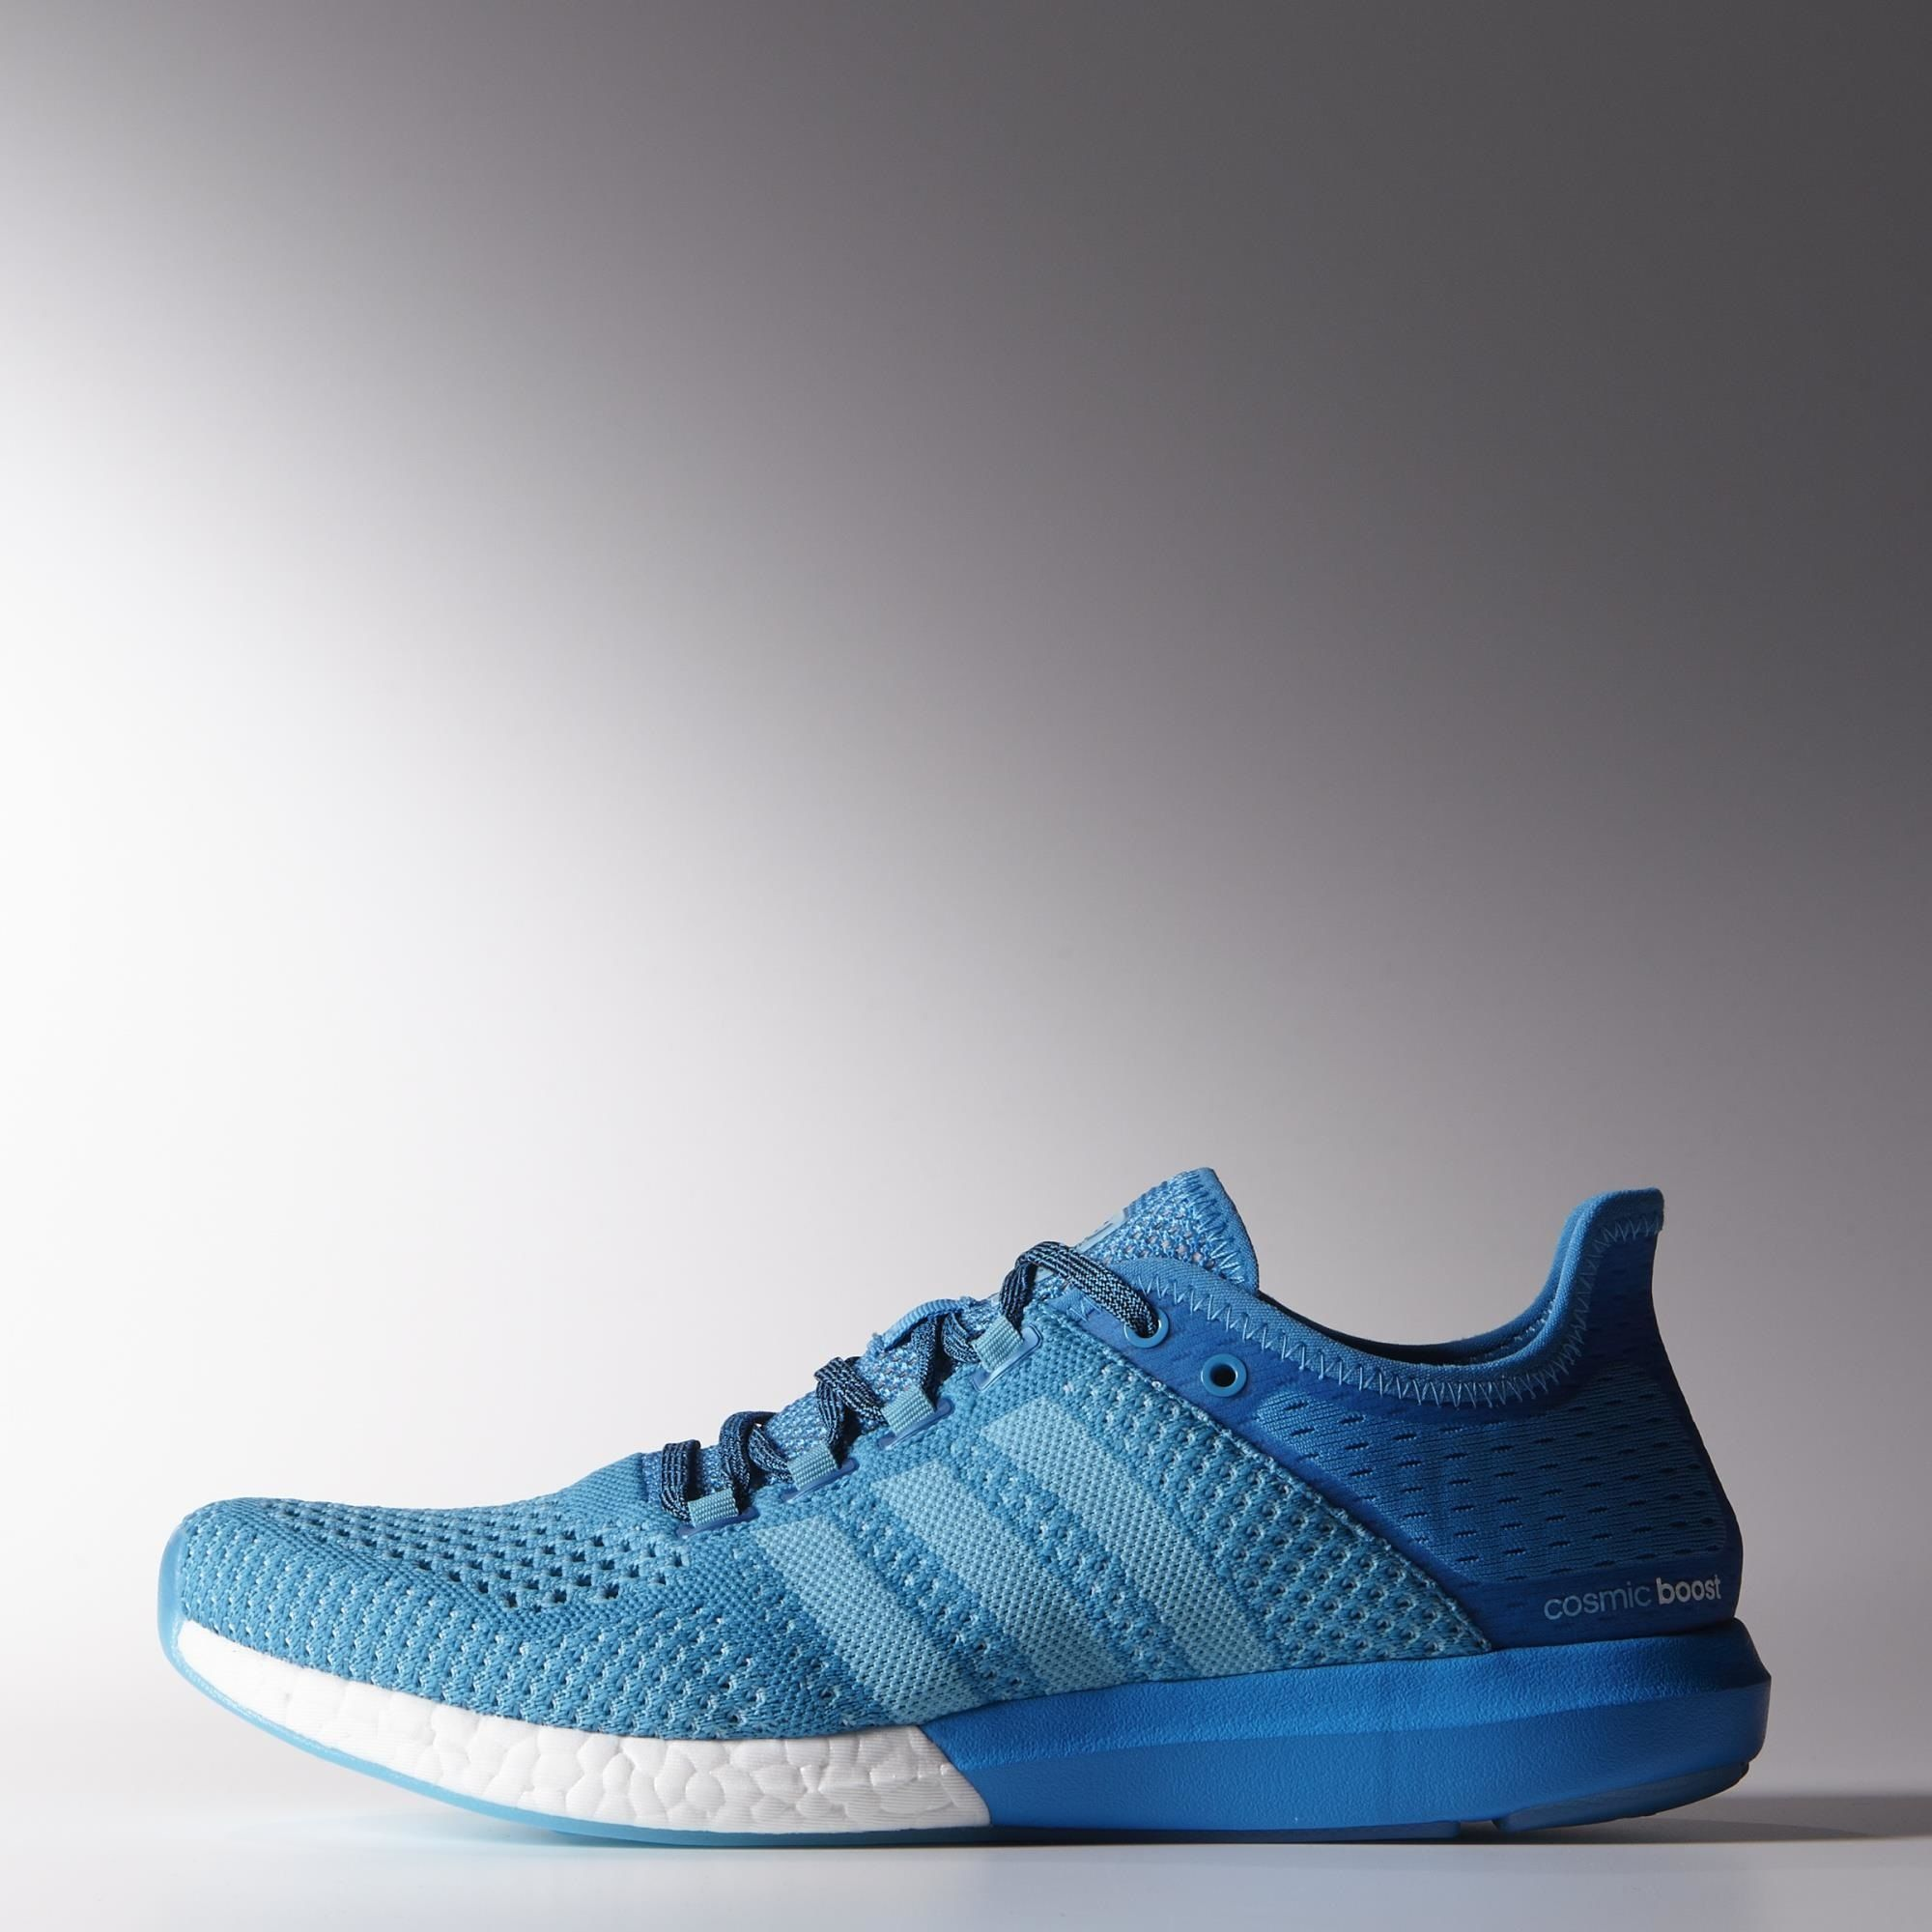 adidas Climachill Cosmic Boost Shoes Solar Blue  Solar Blue  Black  B44080